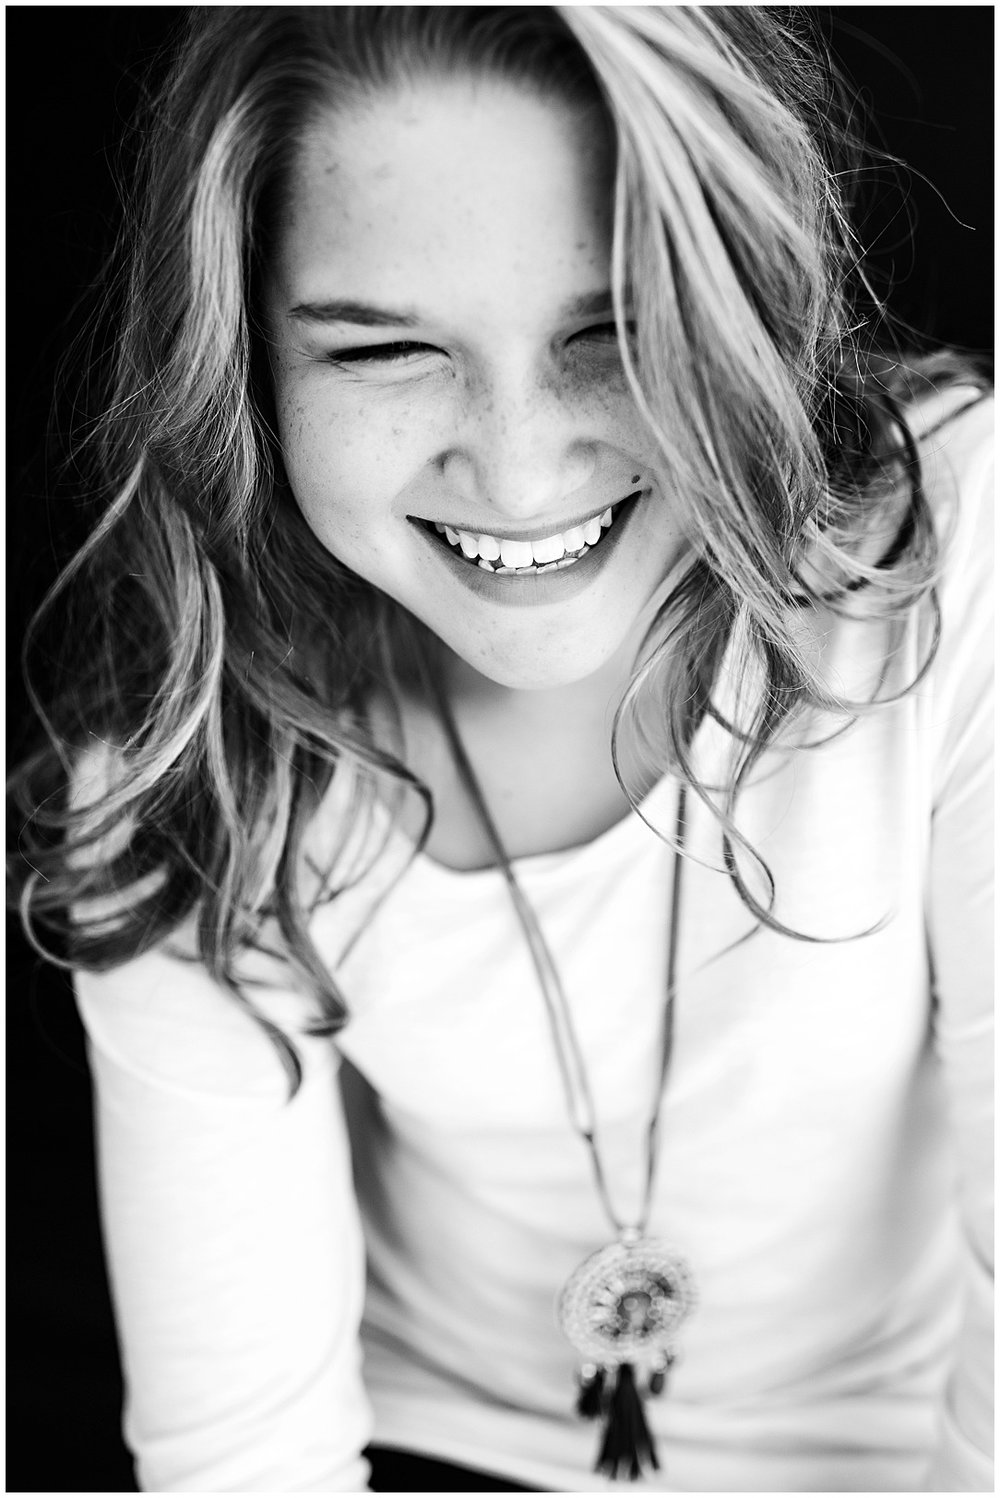 Tessa_marie_photography_family_portrait_photographer_mother_daughter_family_sessions_timeless_elegance_Vogue_magazine_style_portraits_contemporary_portraits_0097.jpg